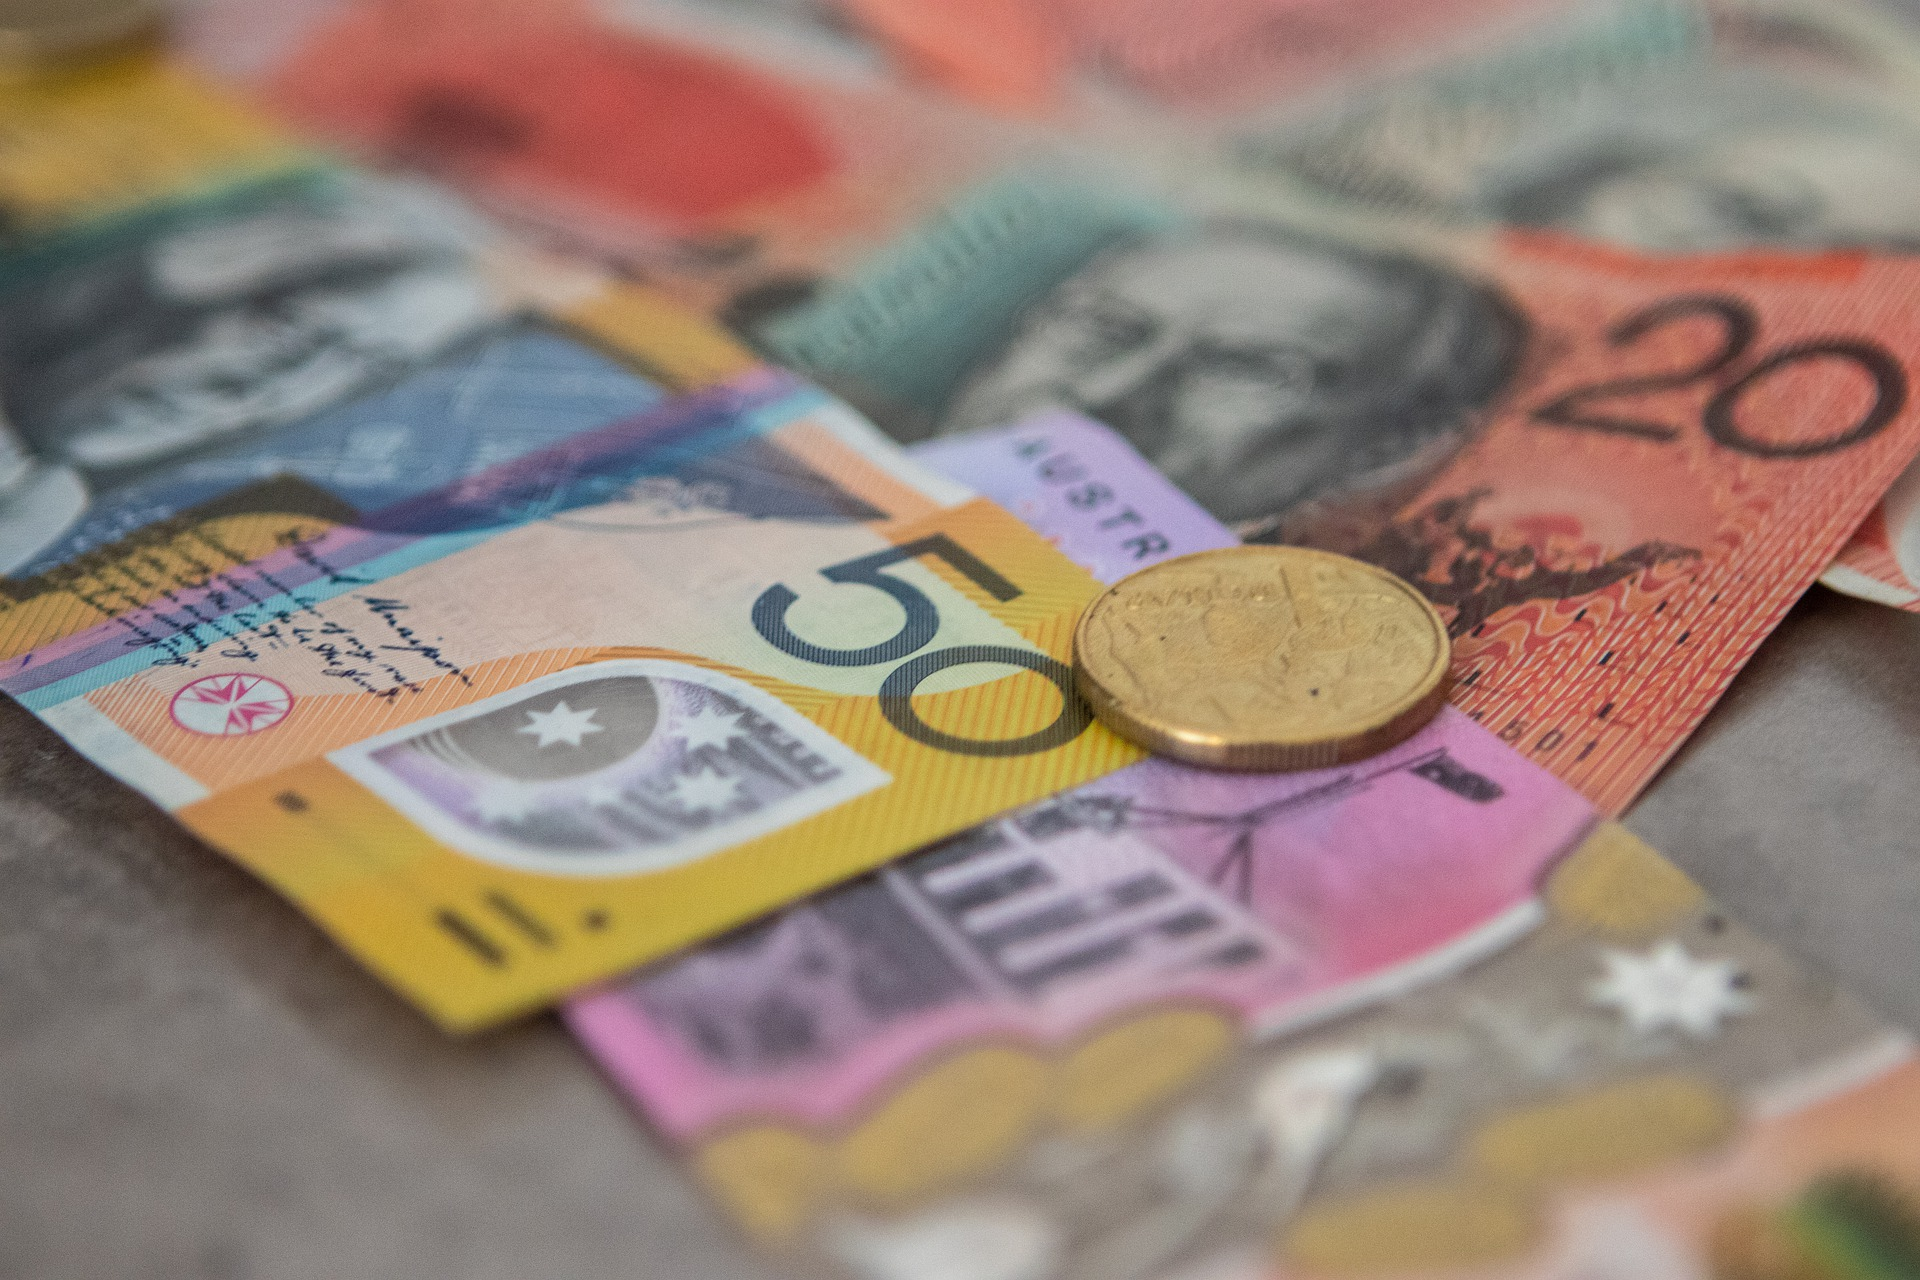 Image of Australian currency one dollar coin, 50 dollar note, 5 dollar note and 20 dollar note.